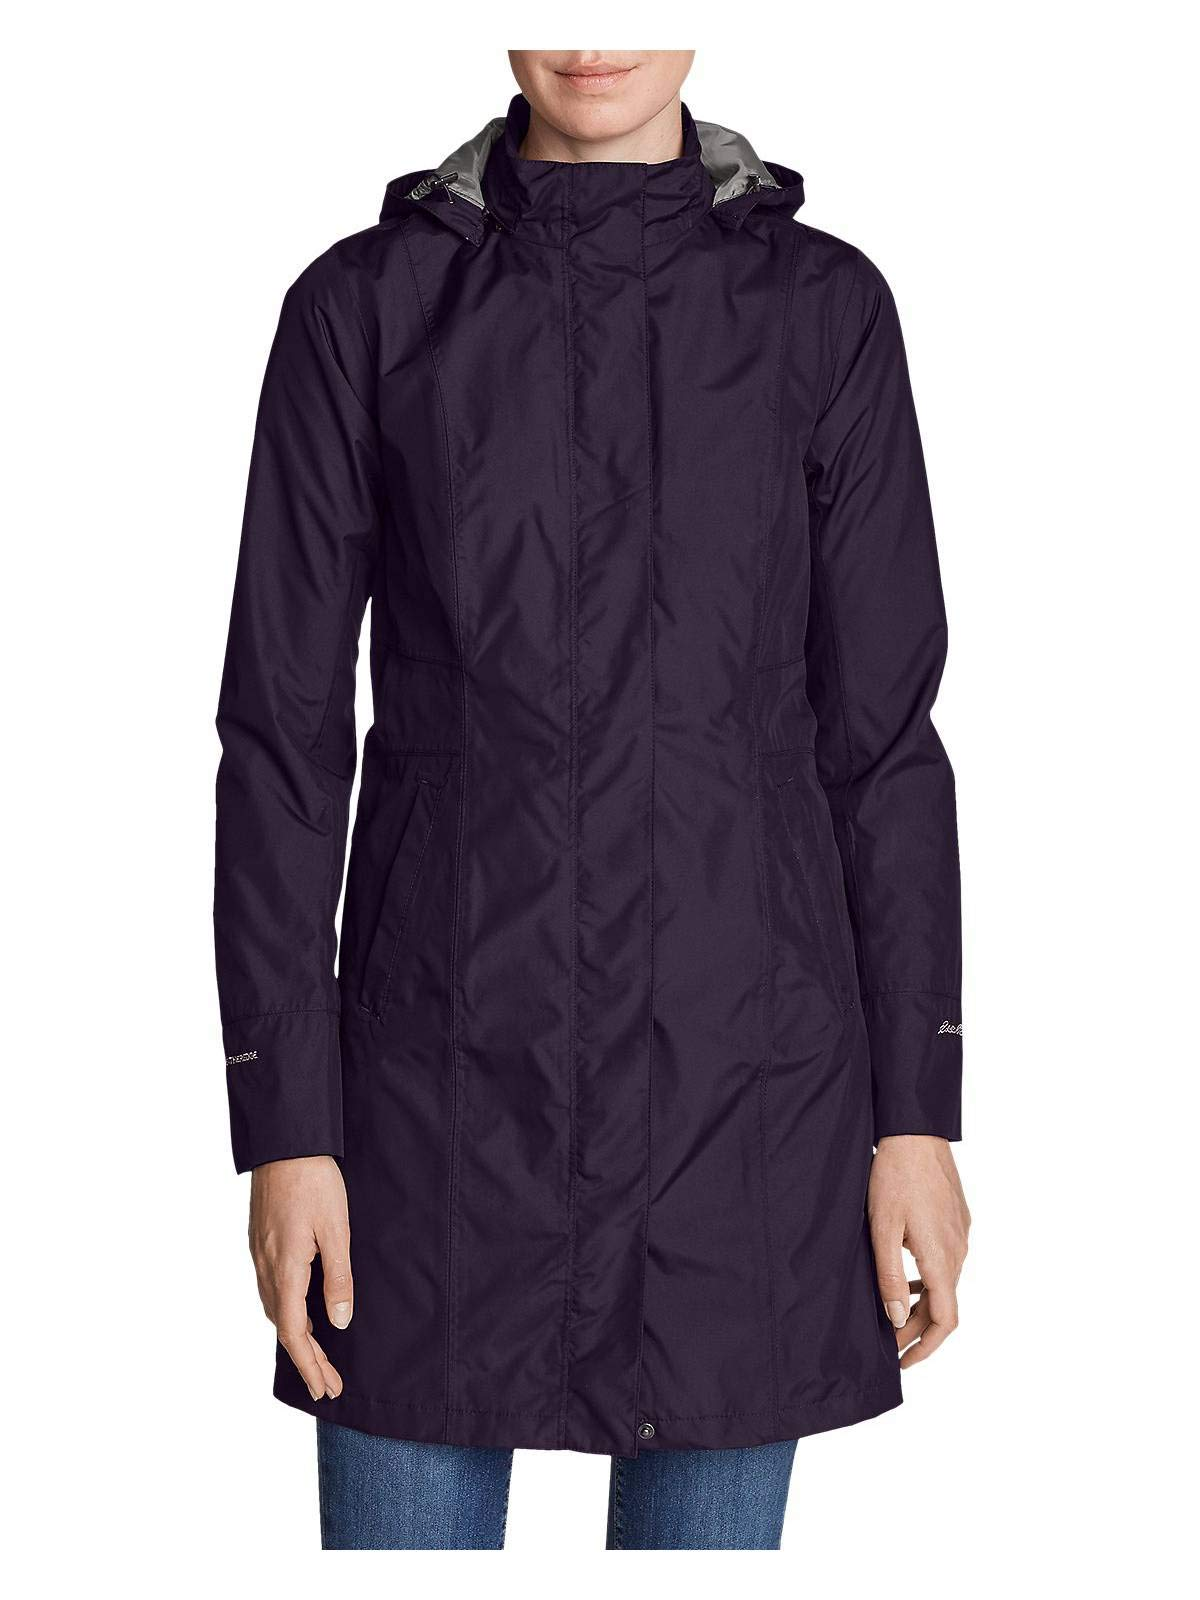 Eddie Bauer Women's Girl On The Go Insulated Trench Coat, Deep Eggplant Petite X